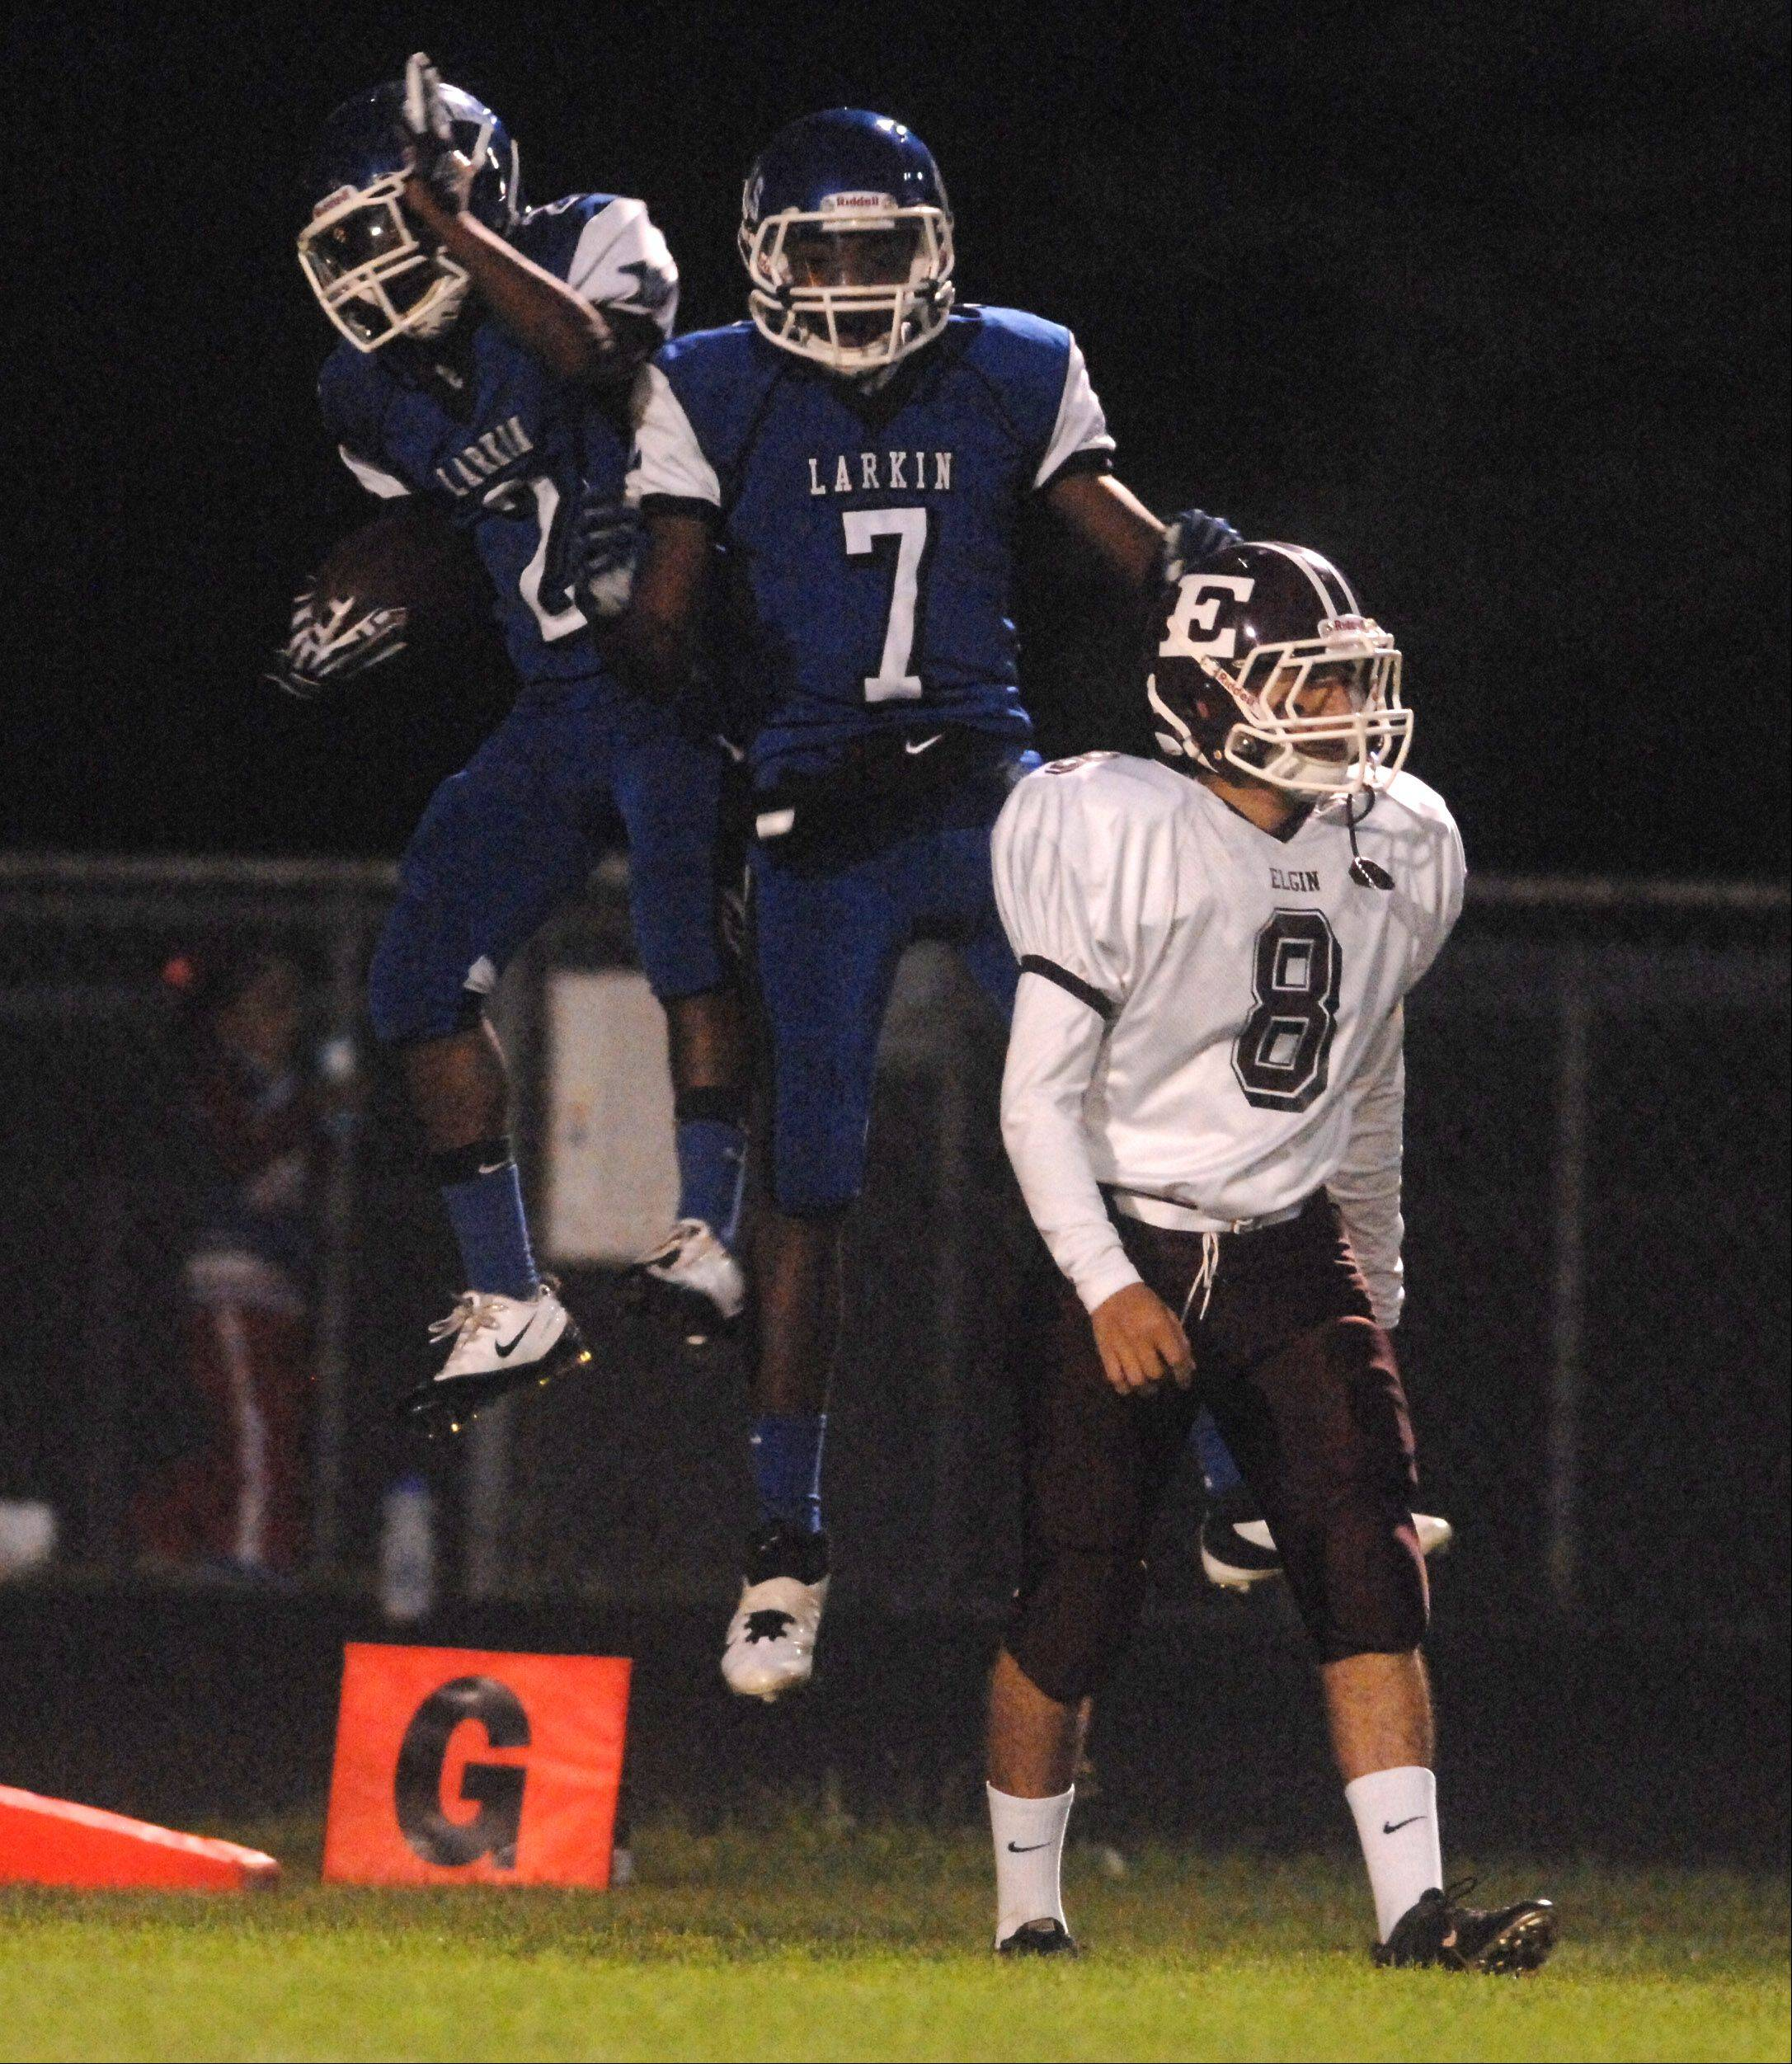 Larkin's Damion Clemons celebrates the first touchdown of the game with teammate Dante Bonds.